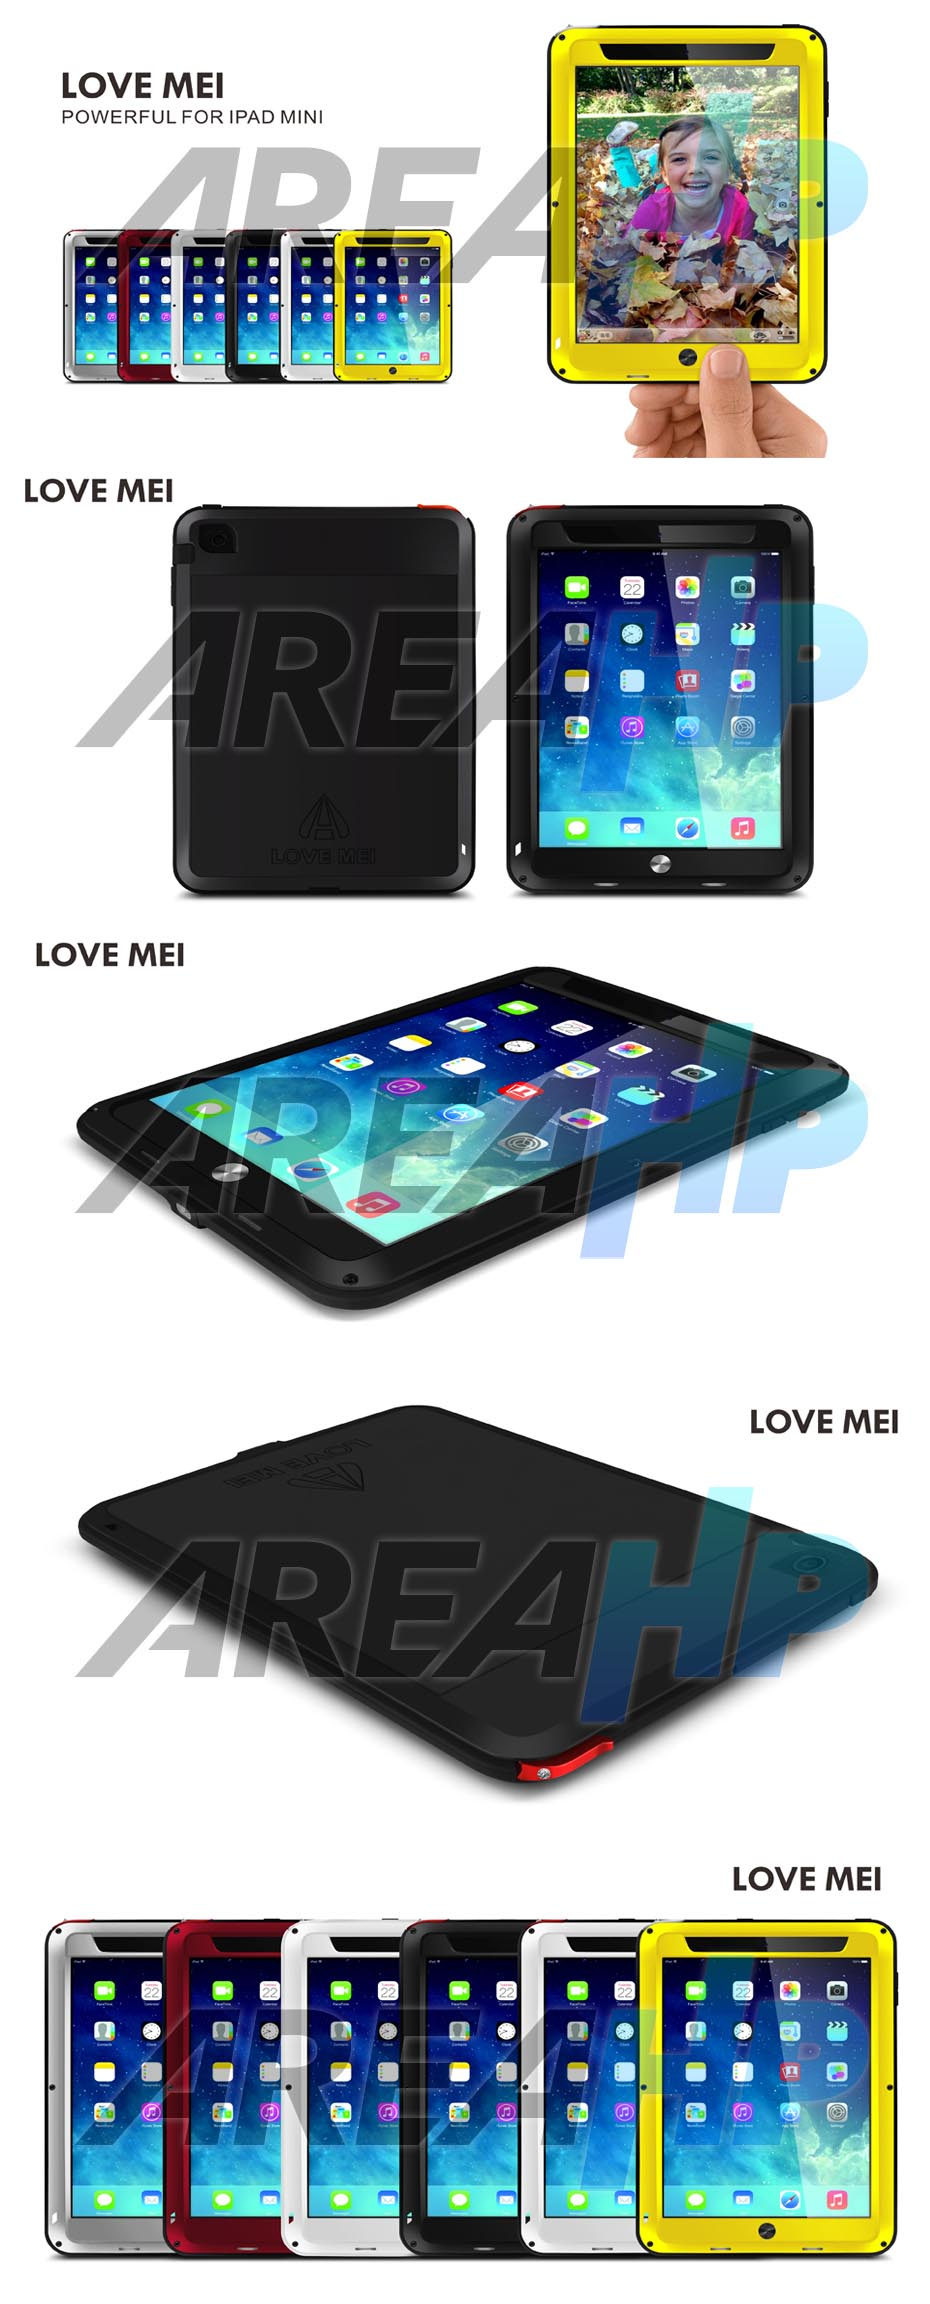 Love Mei Powerful Case for iPad Mini 1, 2, 3 Overview